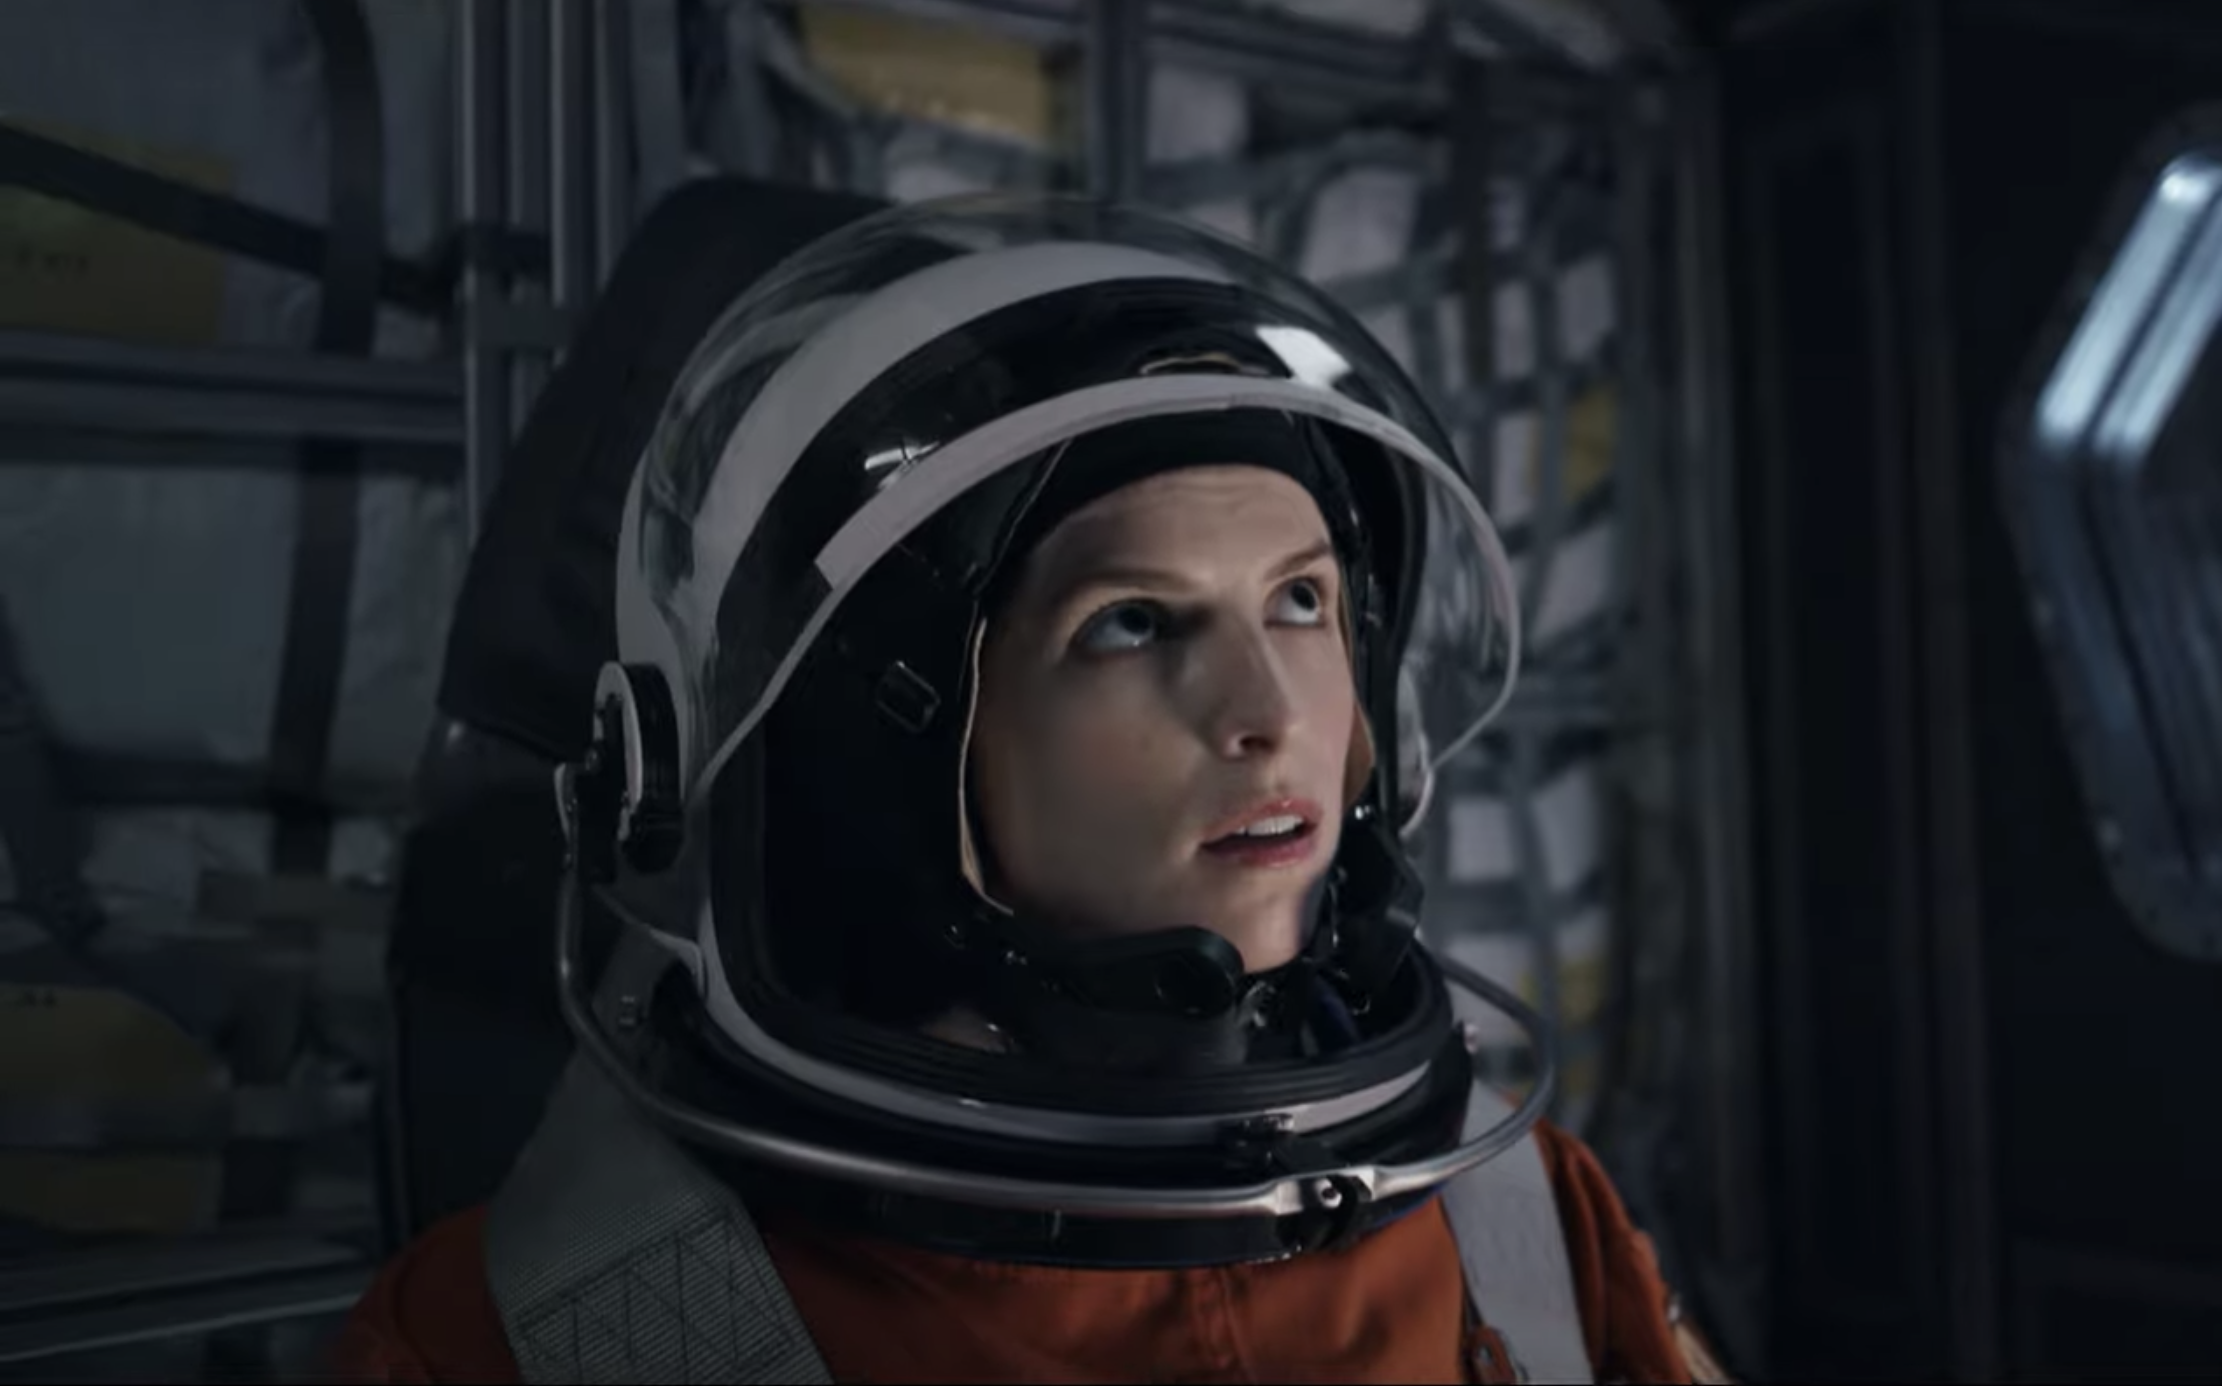 'Stowaway' Trailer: Anna Kendrick, Toni Collette, Daniel Dae Kim in Netflix Space Thriller